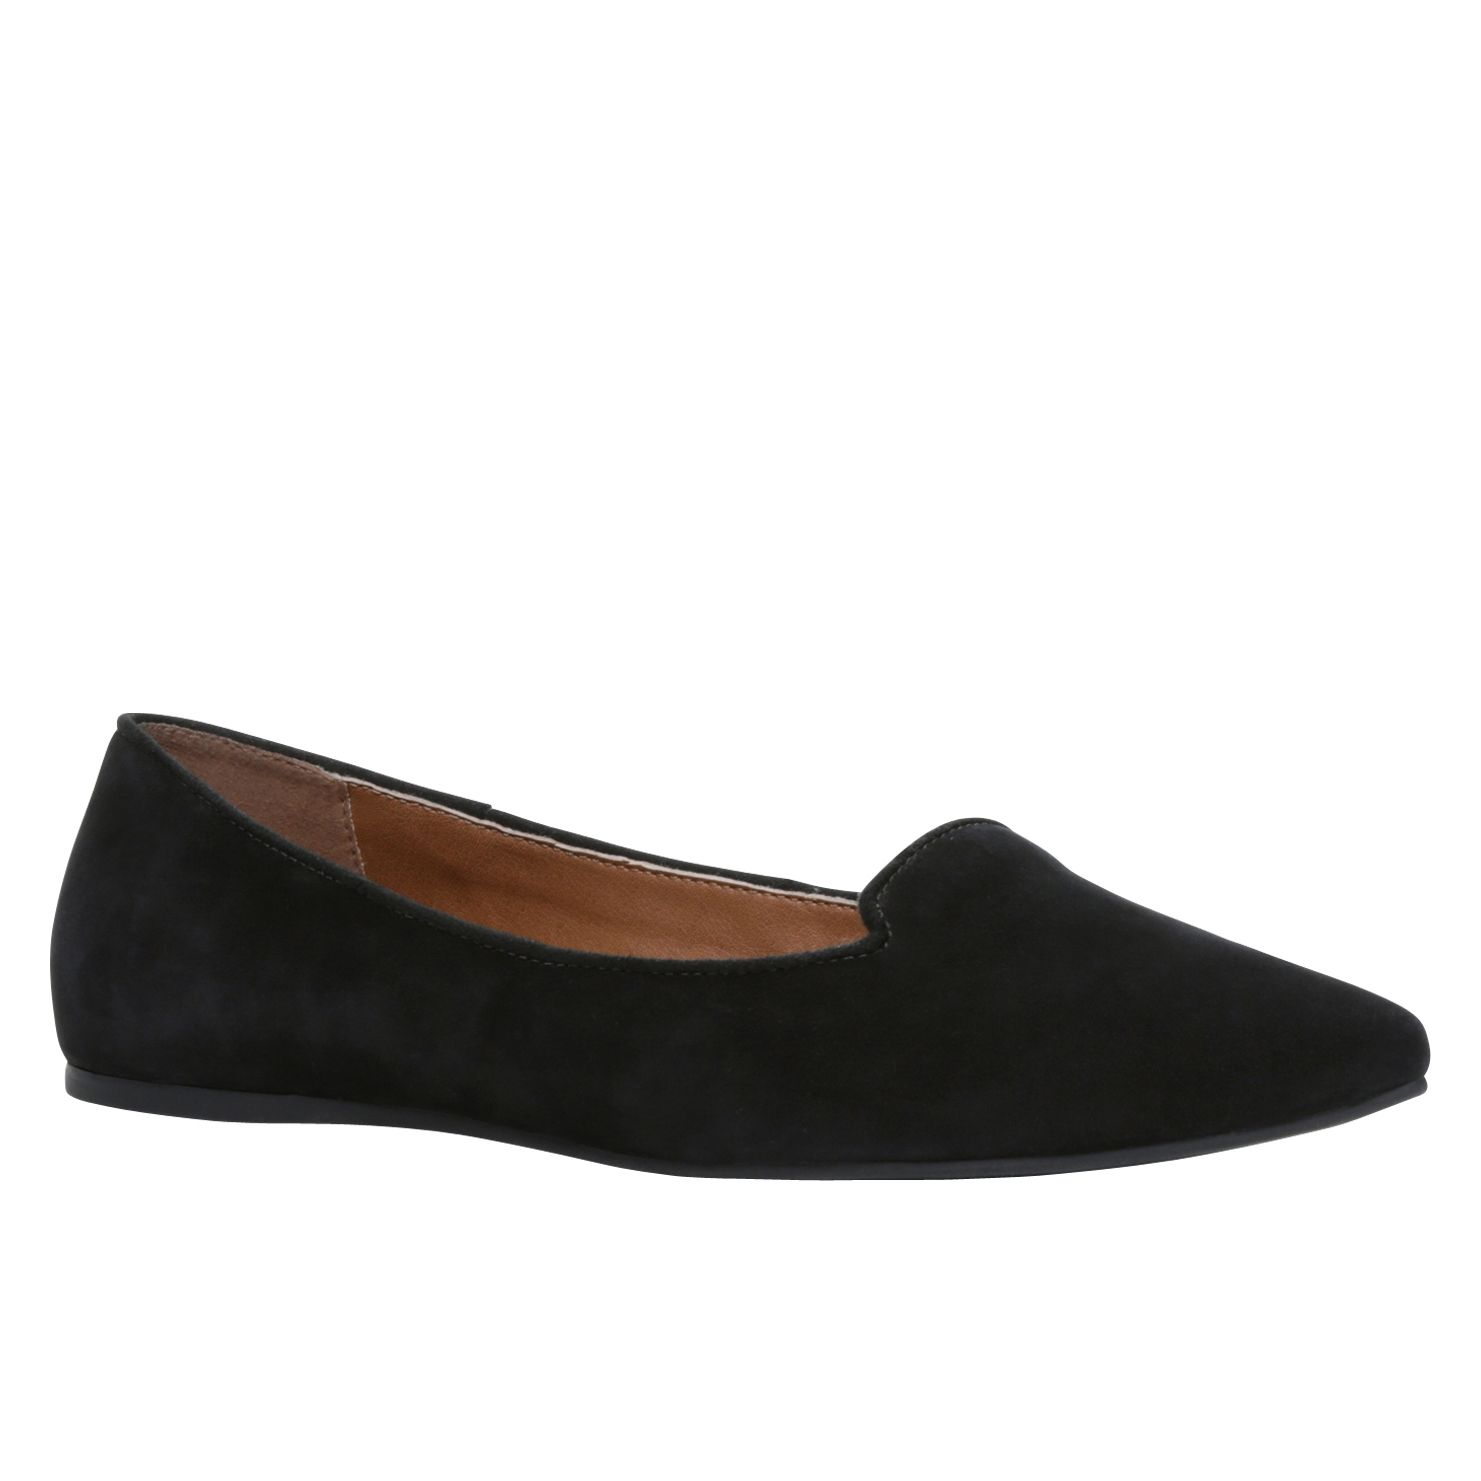 Edelirien almond toe loafer shoes